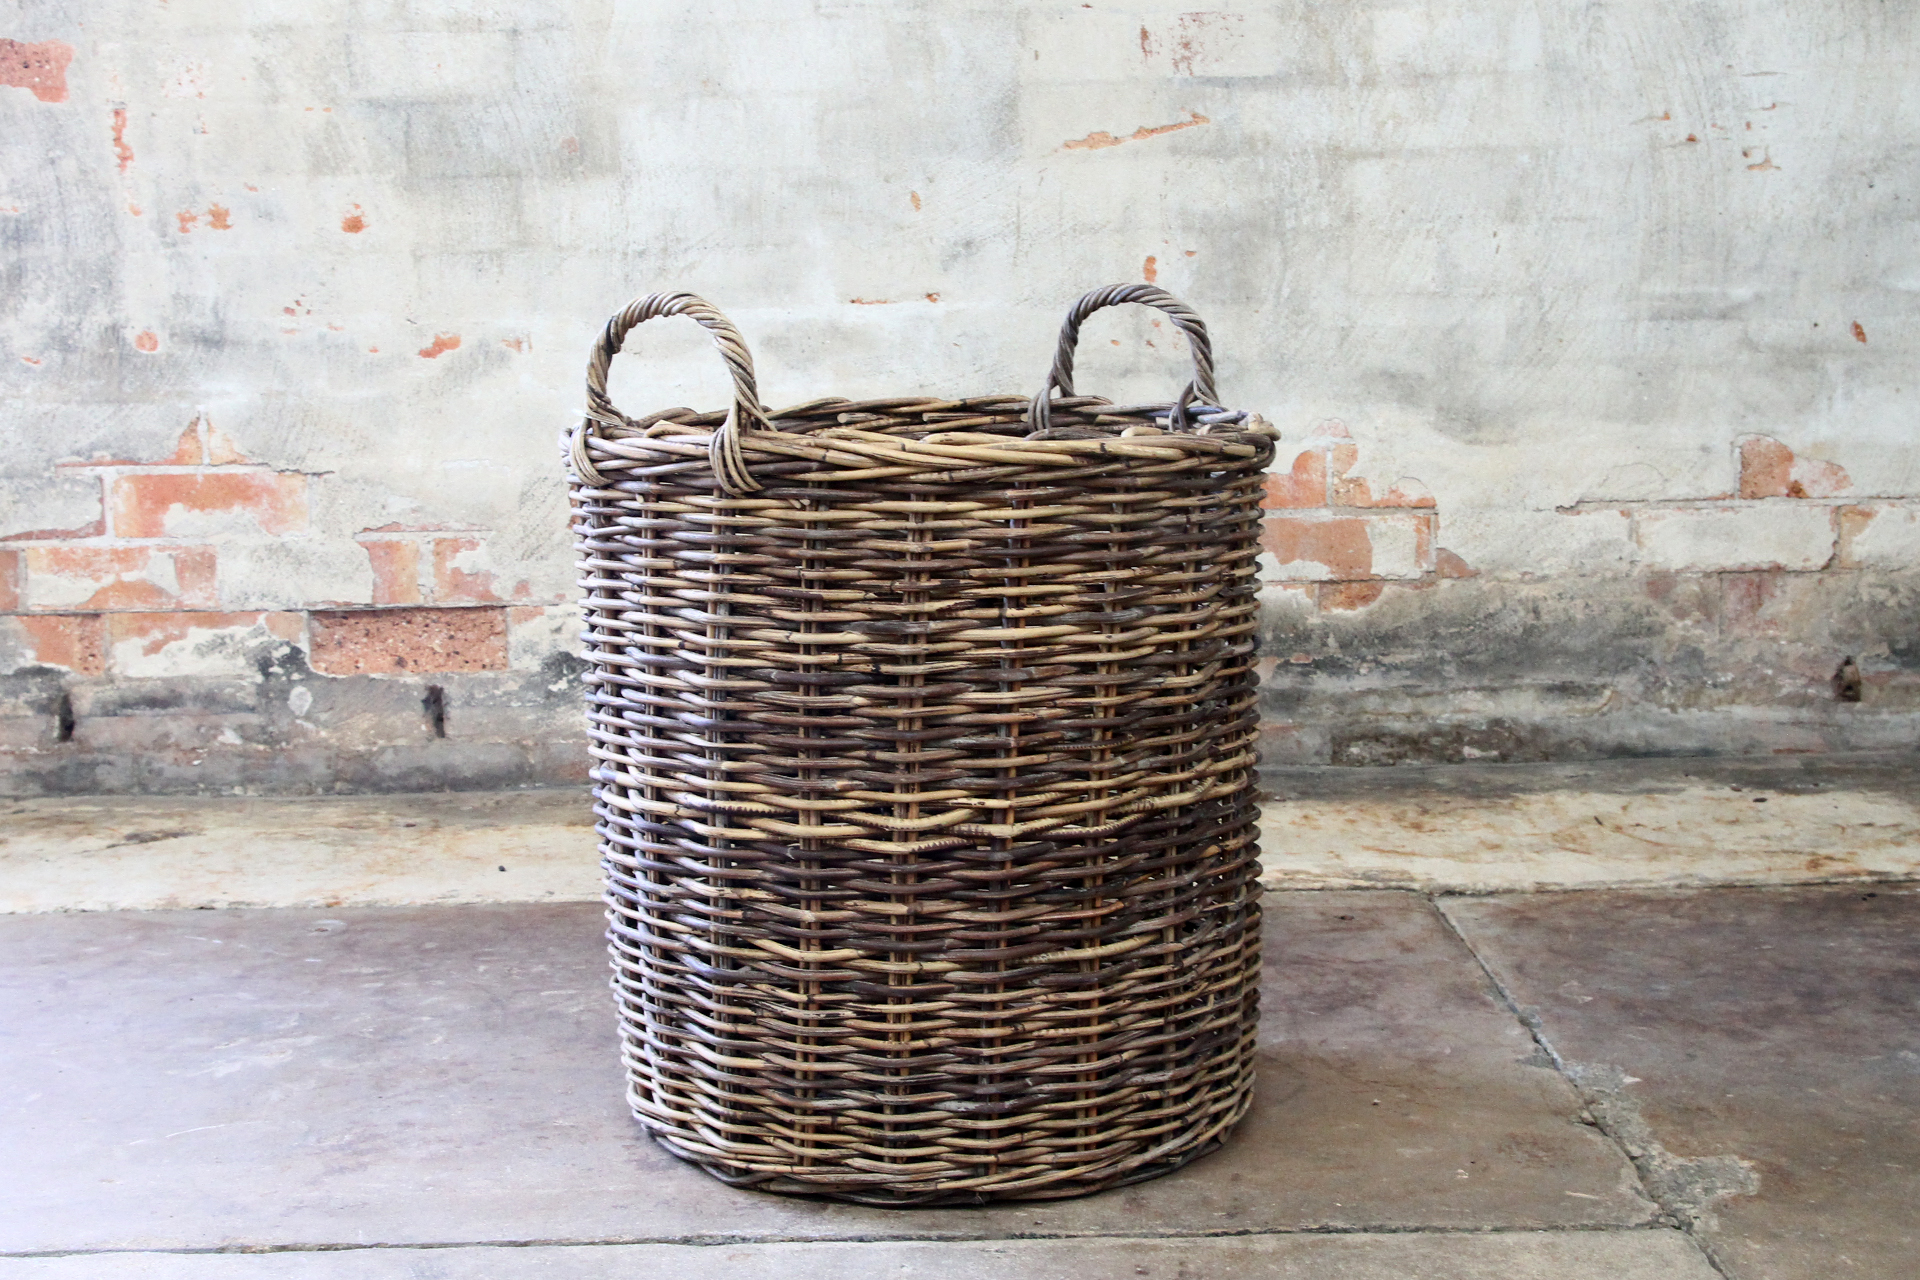 Cane wicker rattan baskets for indoor plants